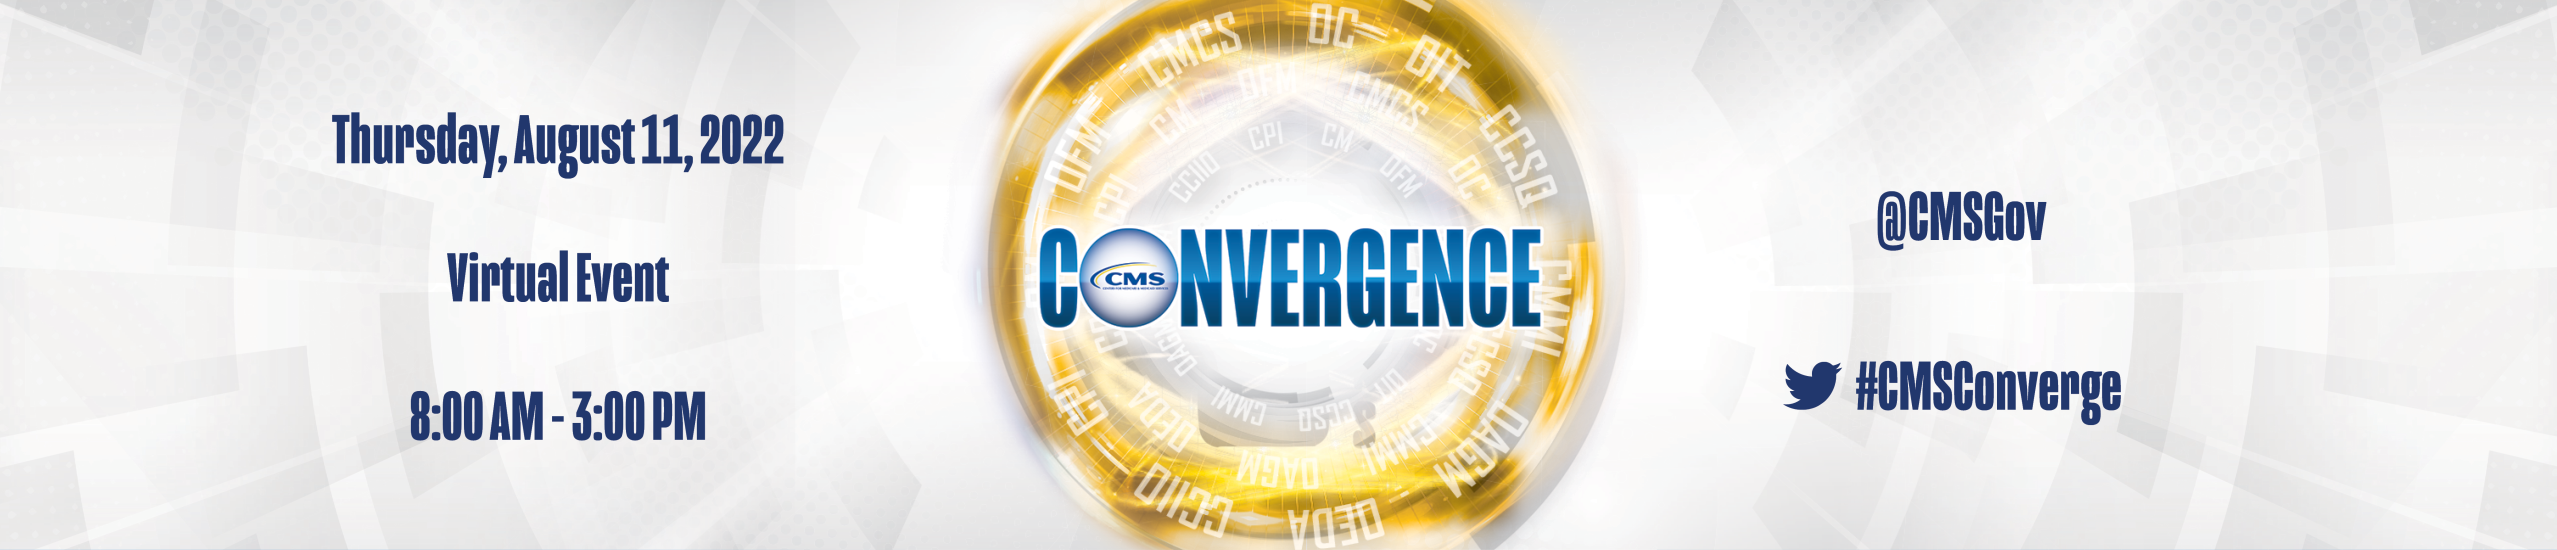 Convergence 2019: Centers for Medicare and Medicaid